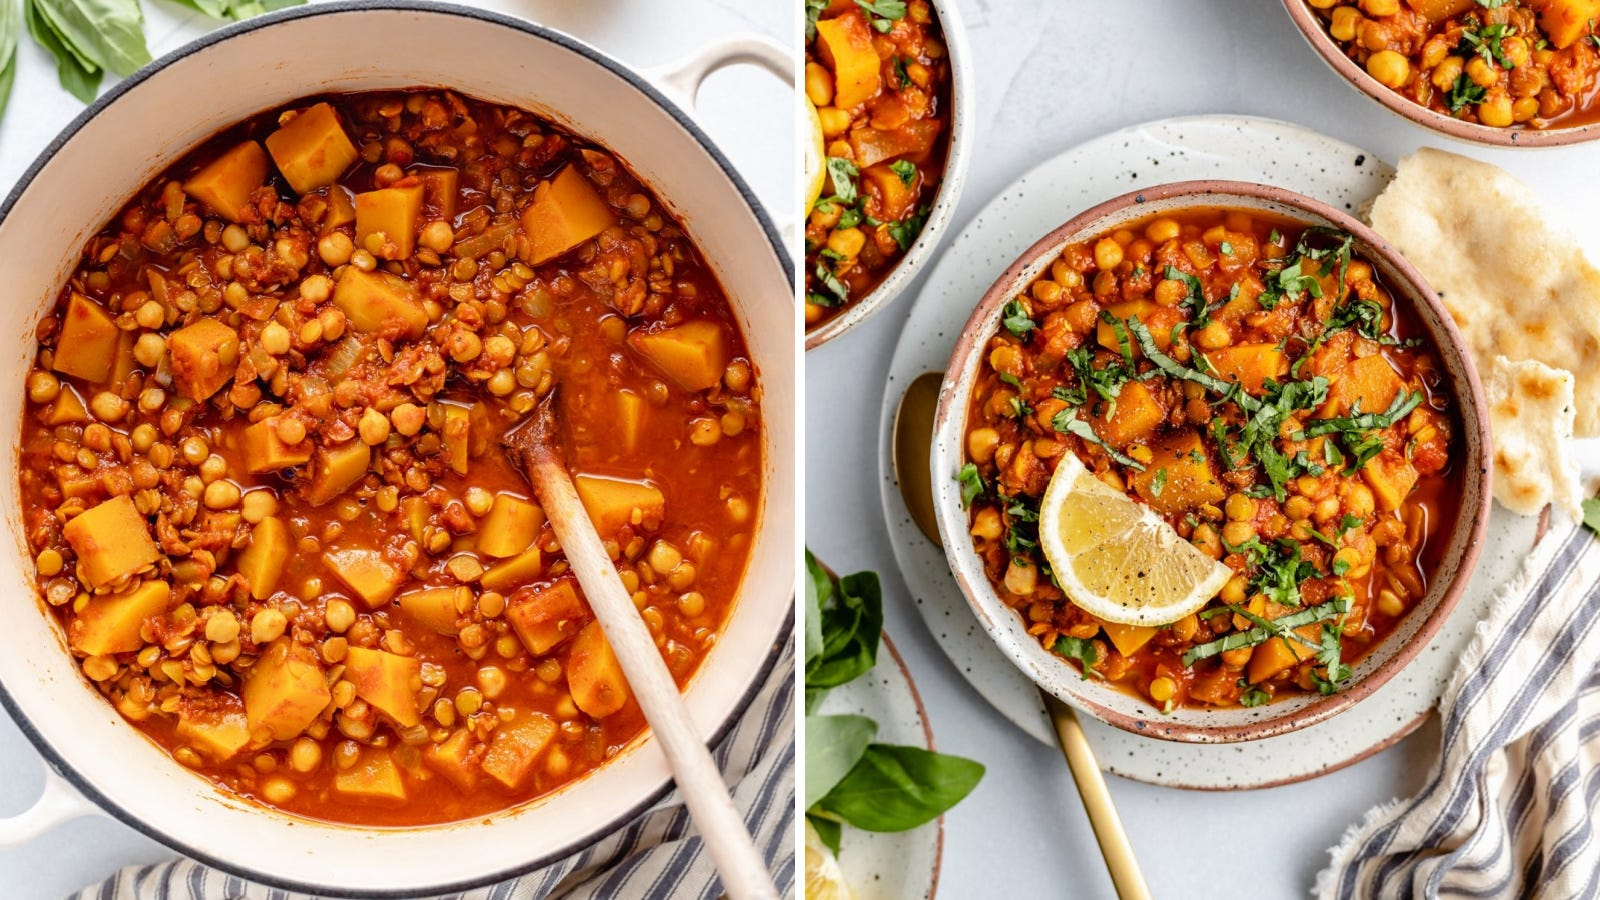 Two images displaying butternut squash chickpea Moroccan stew made by Ambitious Kitchen.